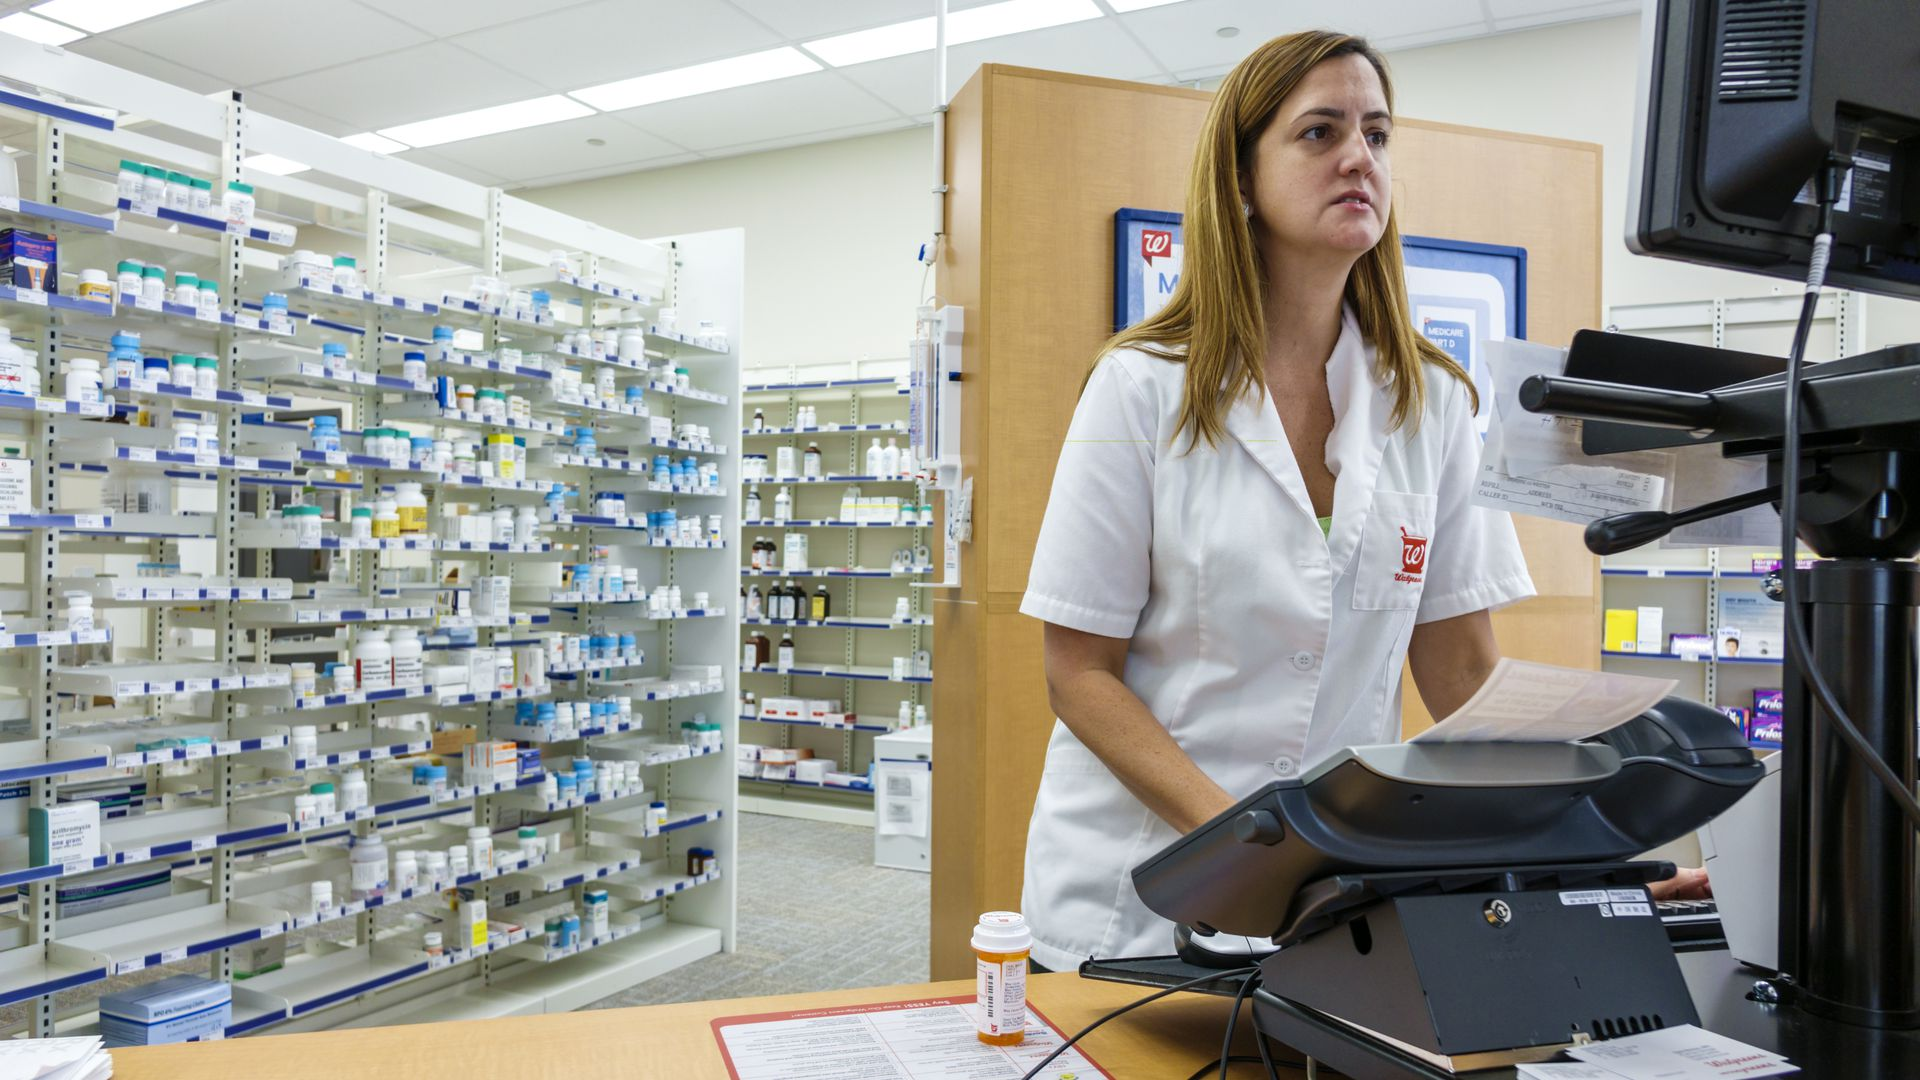 A Walgreens pharmacist fills an order.